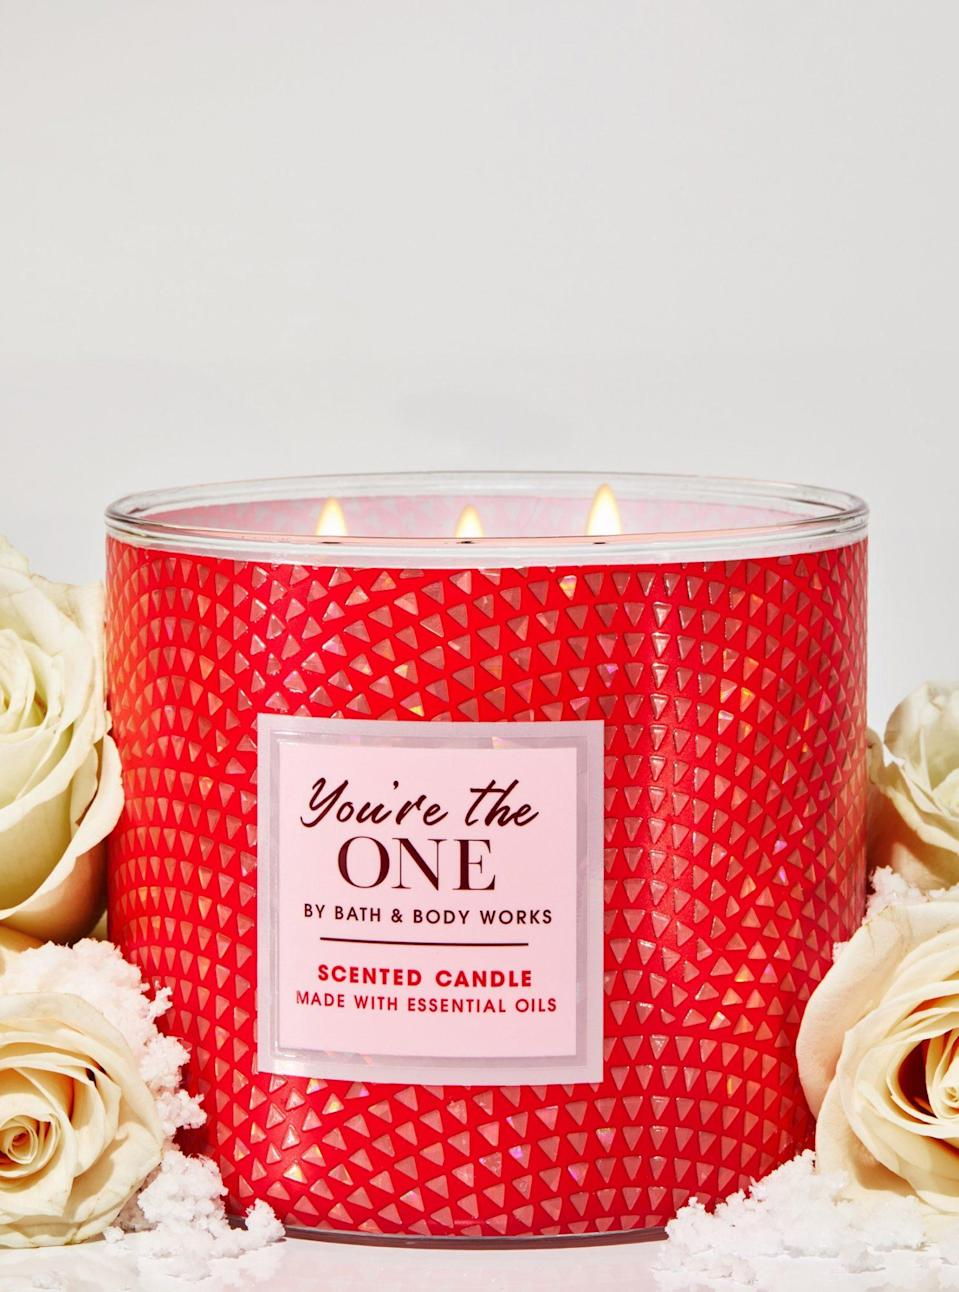 """<p>This popular, feminine fragrance is lovely all year round, but we love this 3-wick candle — in its iridescent, pink-and-red votive — for Valentine's Day gifting. White birch, rose and strawberry nectar are the three main notes you'll smell, and boy does it ever fill a room. </p> <p><strong>Buy It!</strong> $24.50, <a href=""""https://www.pntra.com/t/8-4267-131940-44295?sid=PEOTheBestValentinesInspiredCandlesfortheSingleorTakenCandleLoverInYourLifehchubbHomGal12564975202102I&url=https%3A%2F%2Fwww.bathandbodyworks.com%2Fp%2Fyoure-the-one-3-wick-candle-026182137.html"""" rel=""""nofollow noopener"""" target=""""_blank"""" data-ylk=""""slk:bathandbodyworks.com"""" class=""""link rapid-noclick-resp"""">bathandbodyworks.com</a></p>"""